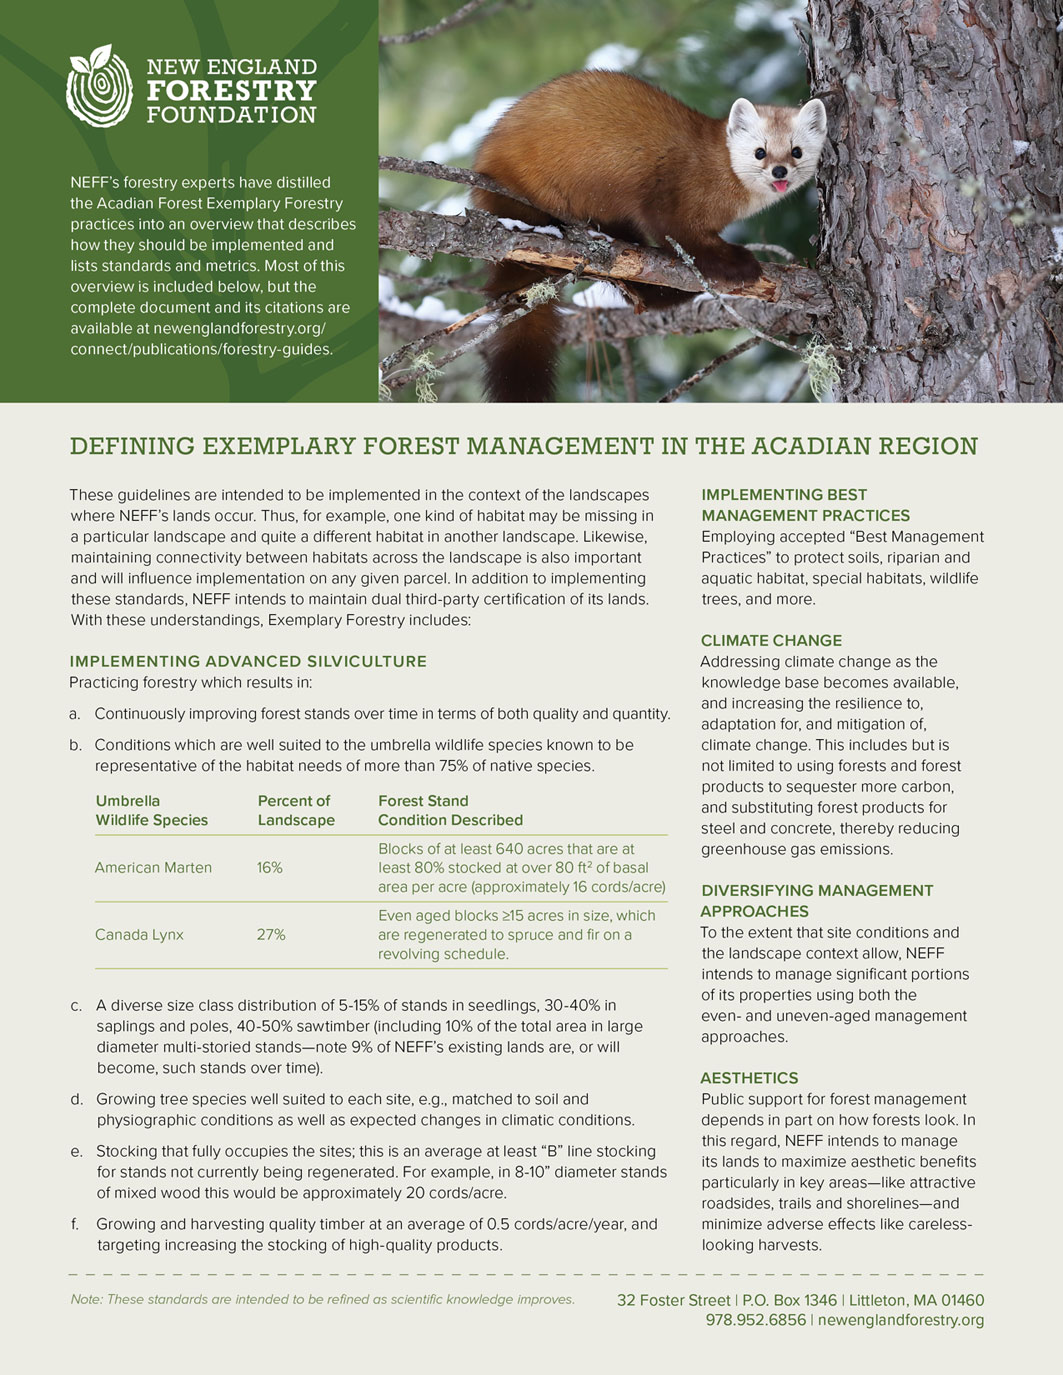 One-page handout that provides an overview of Exemplary Forestry practices